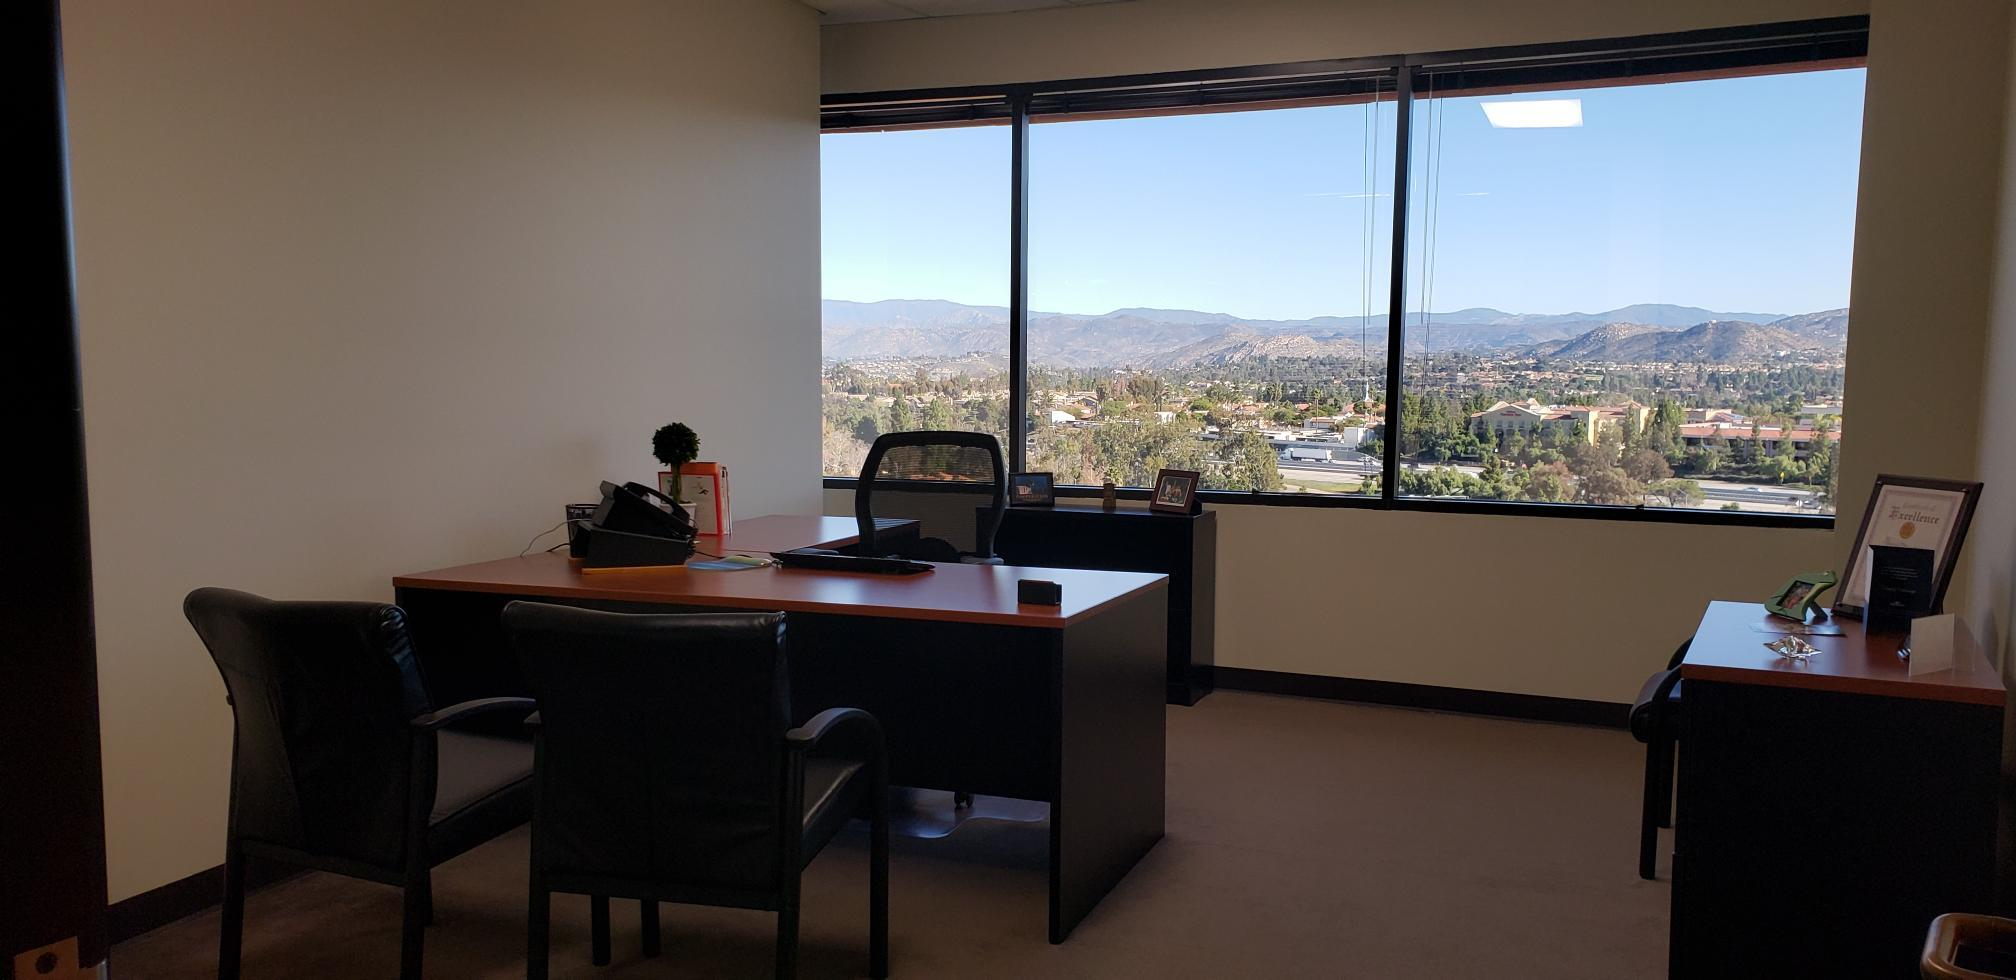 (RB1) Rancho Bernardo - Exterior Corner Office #339